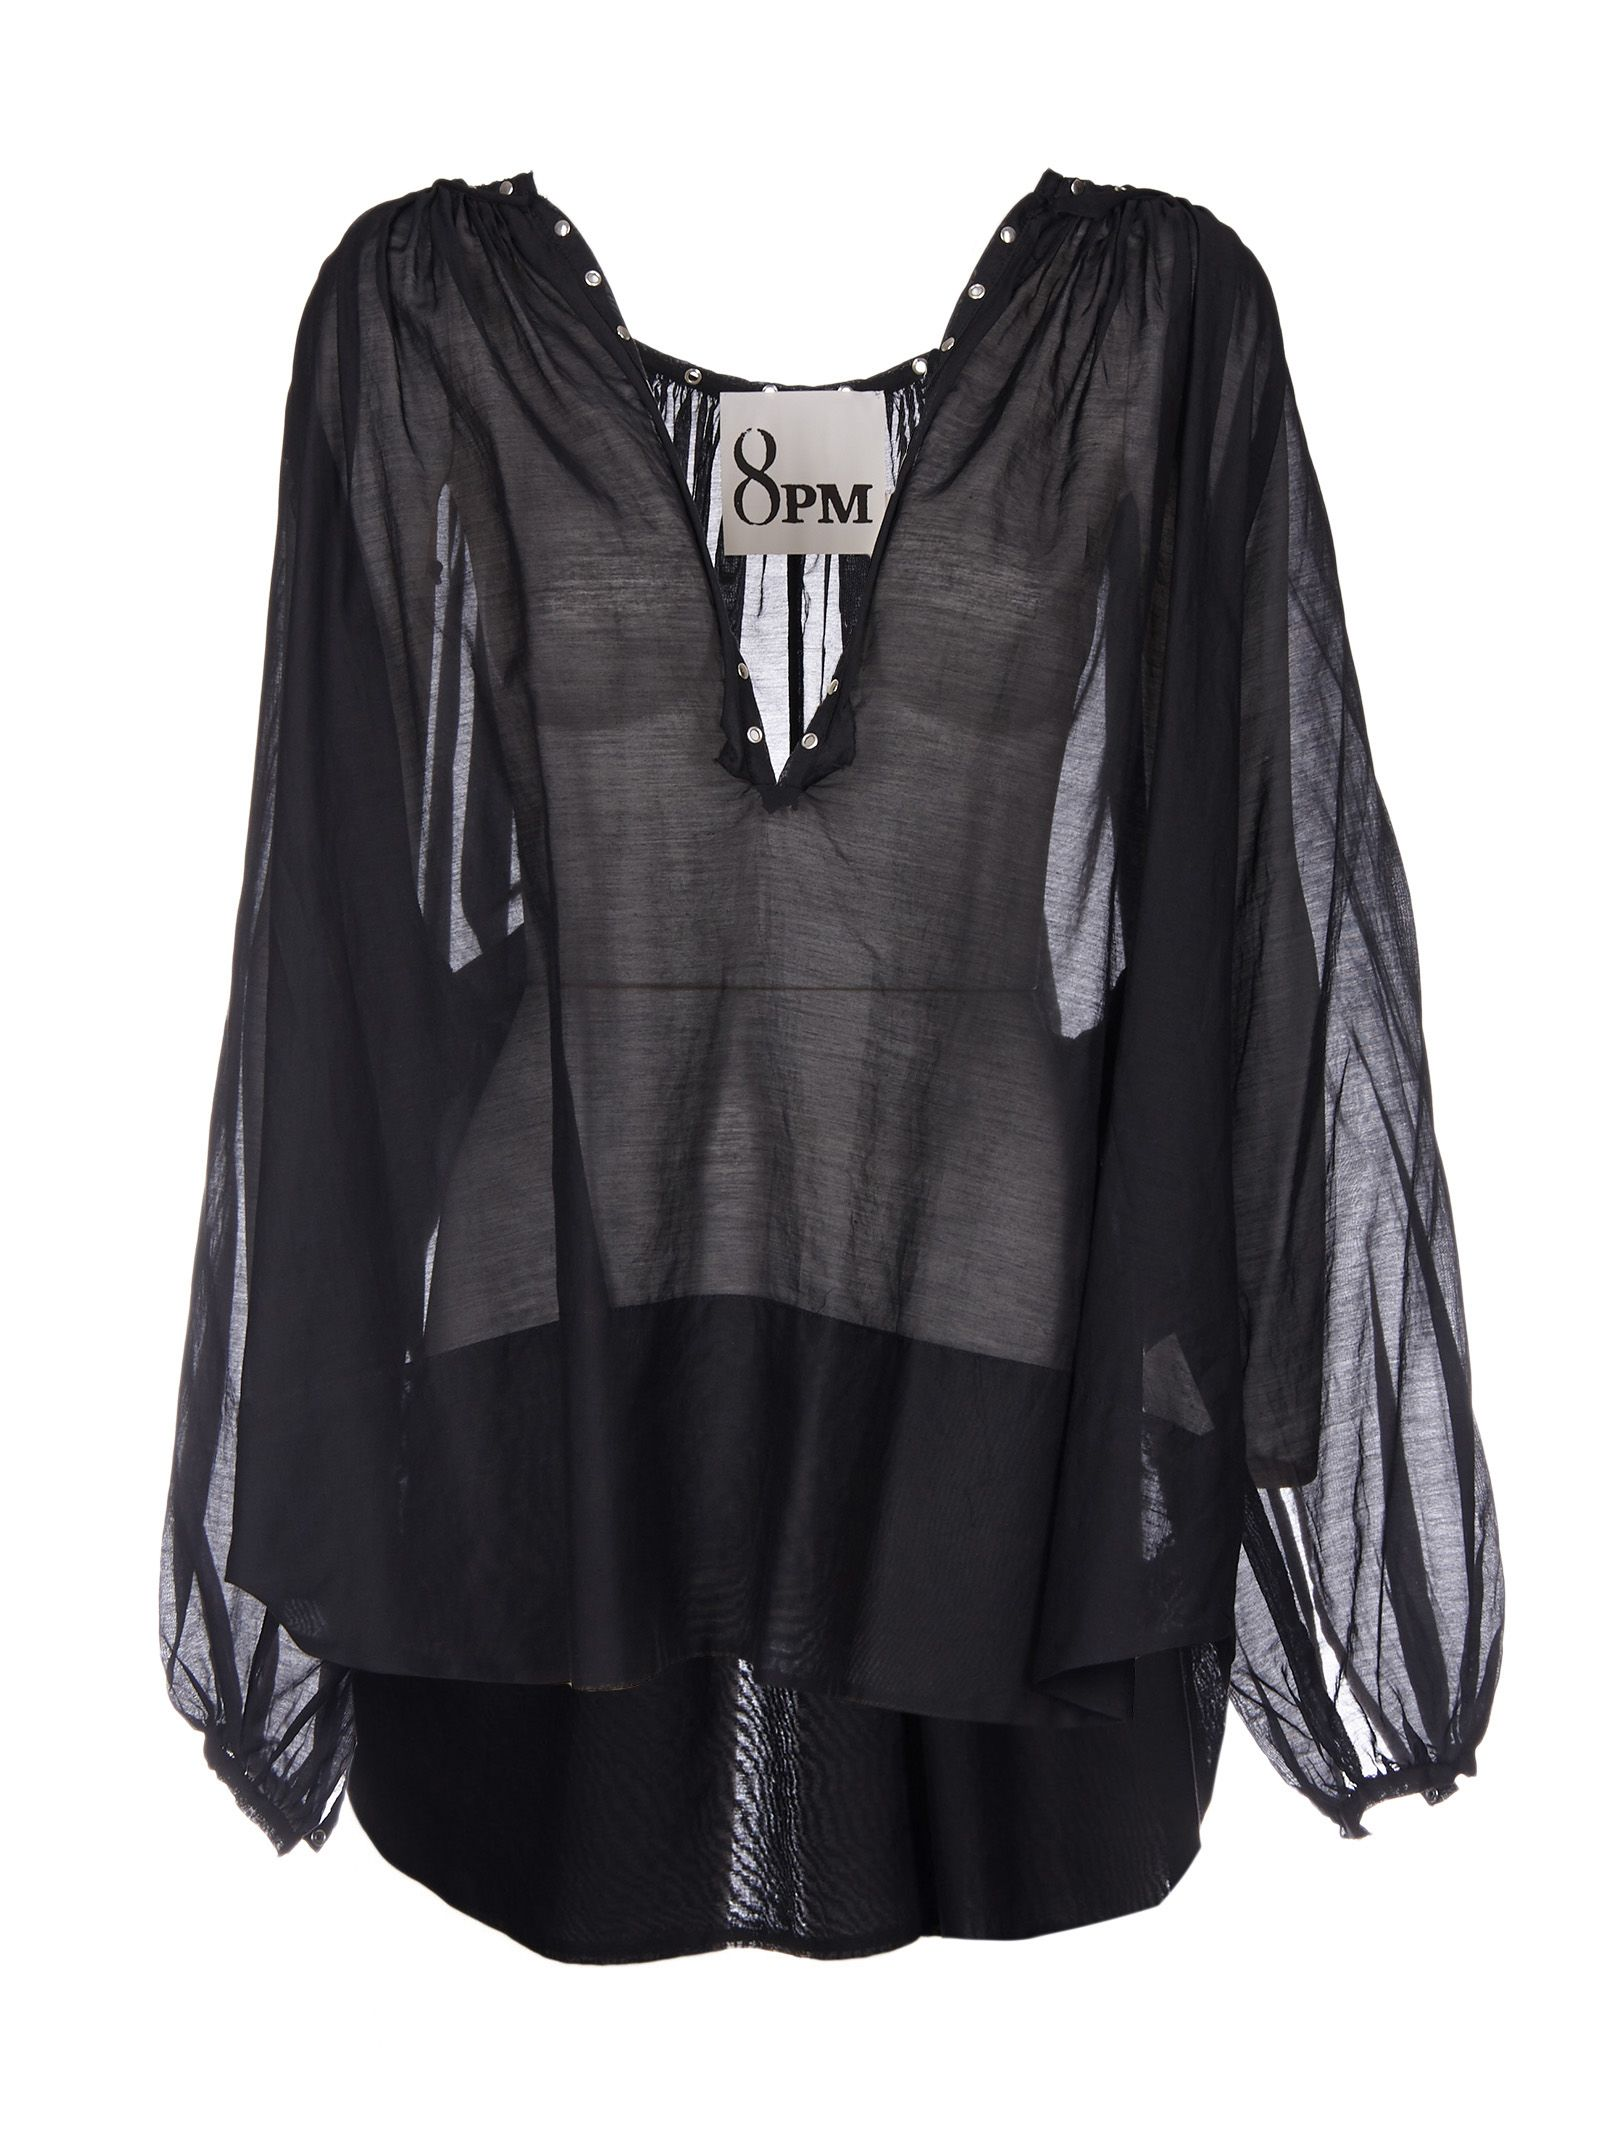 8pm female 8pm luxembourg rivet detail blouse